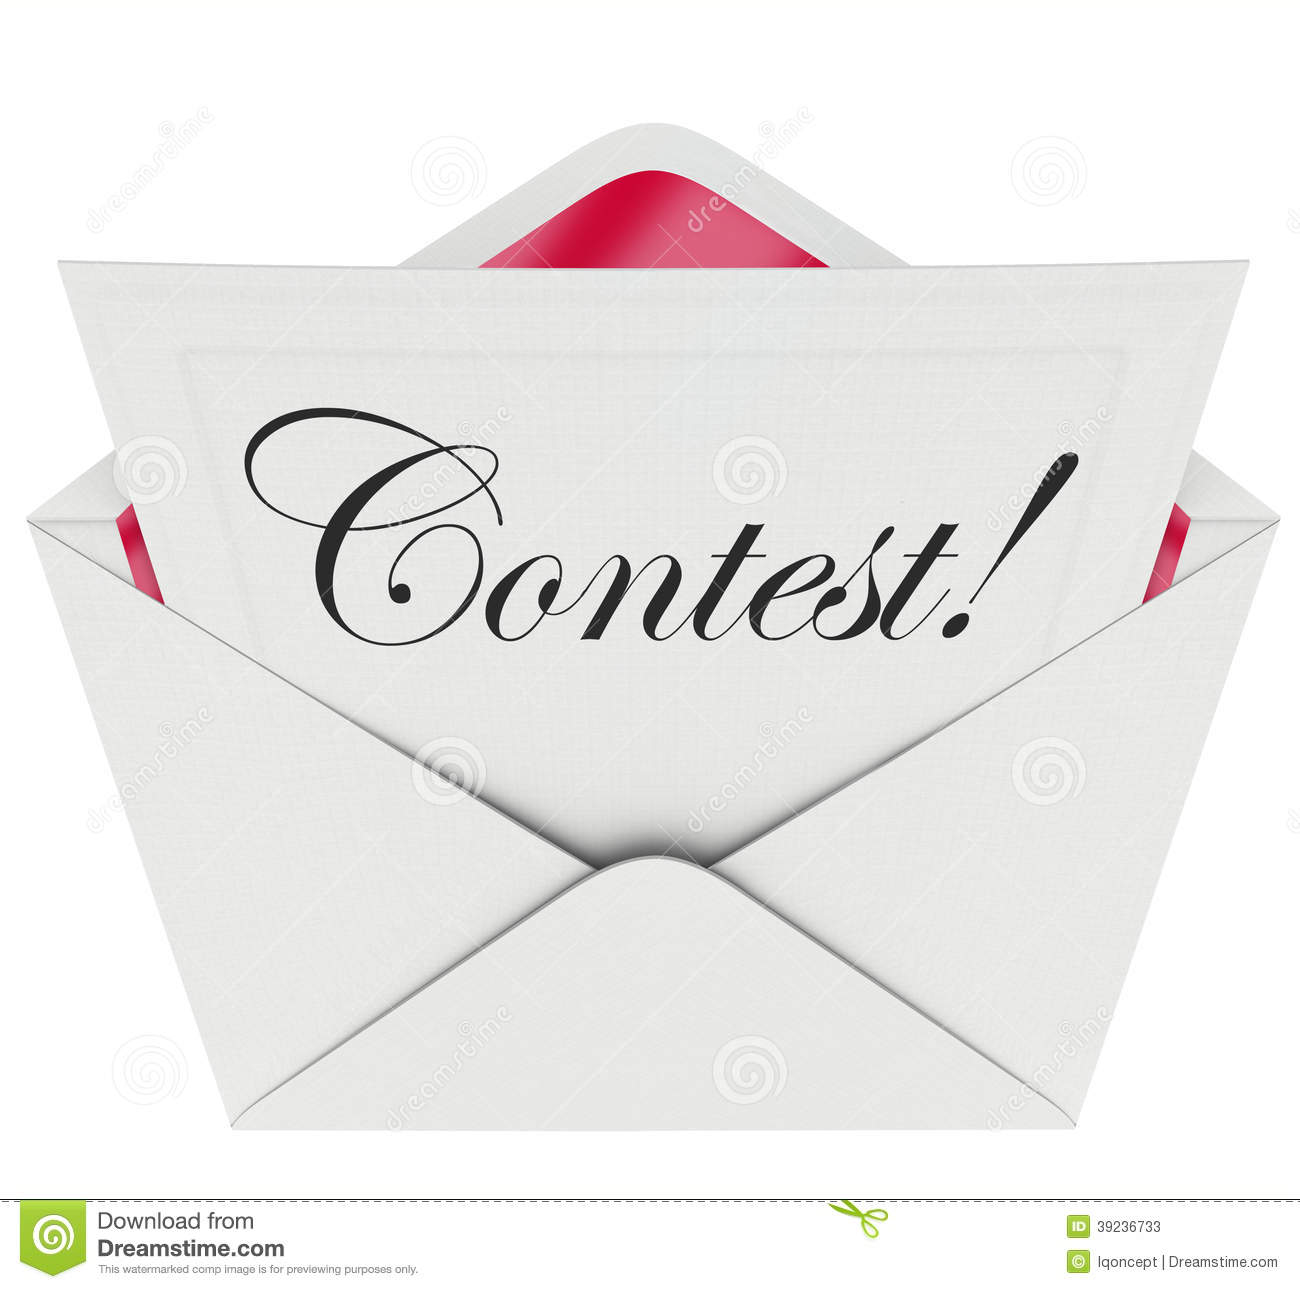 No Credit Check Credit Cards >> Contest Word Entry Form Letter Envelope Invitation to Play